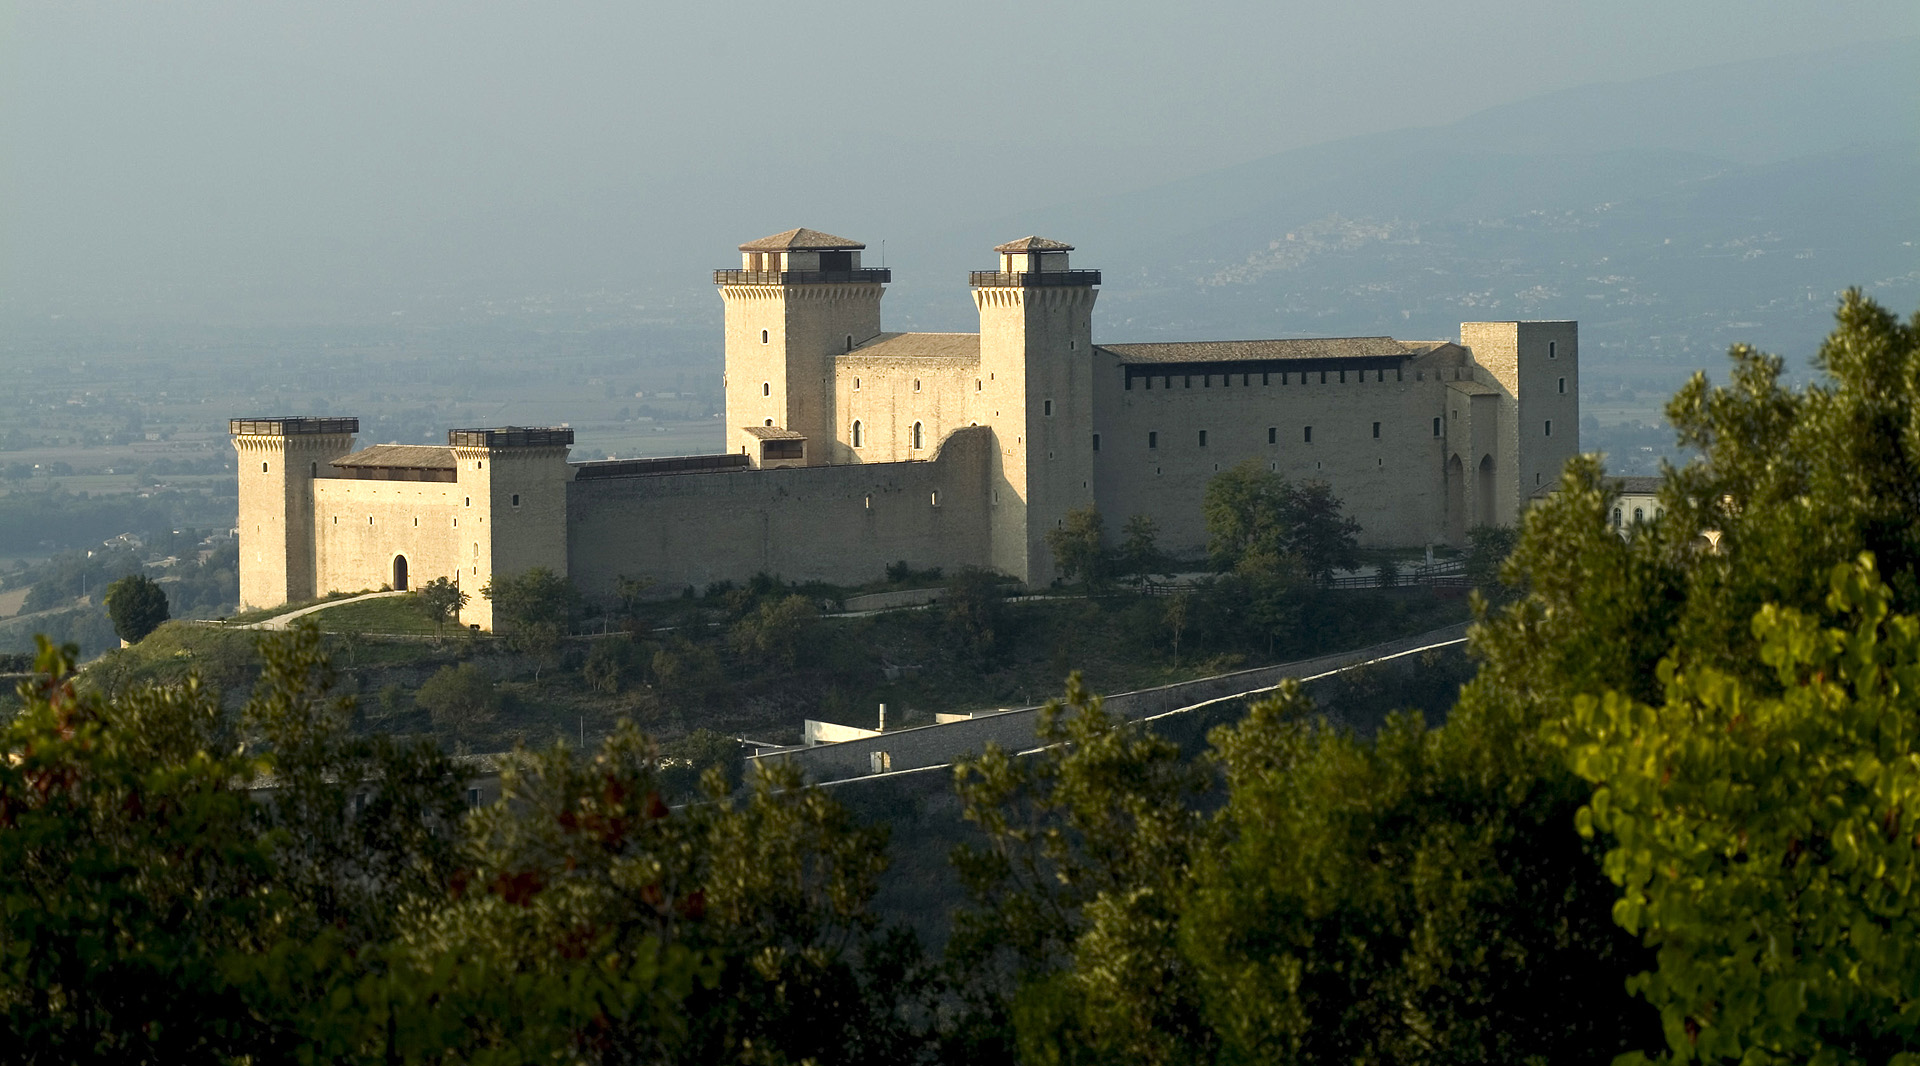 National Museum of the Duchy of Spoleto